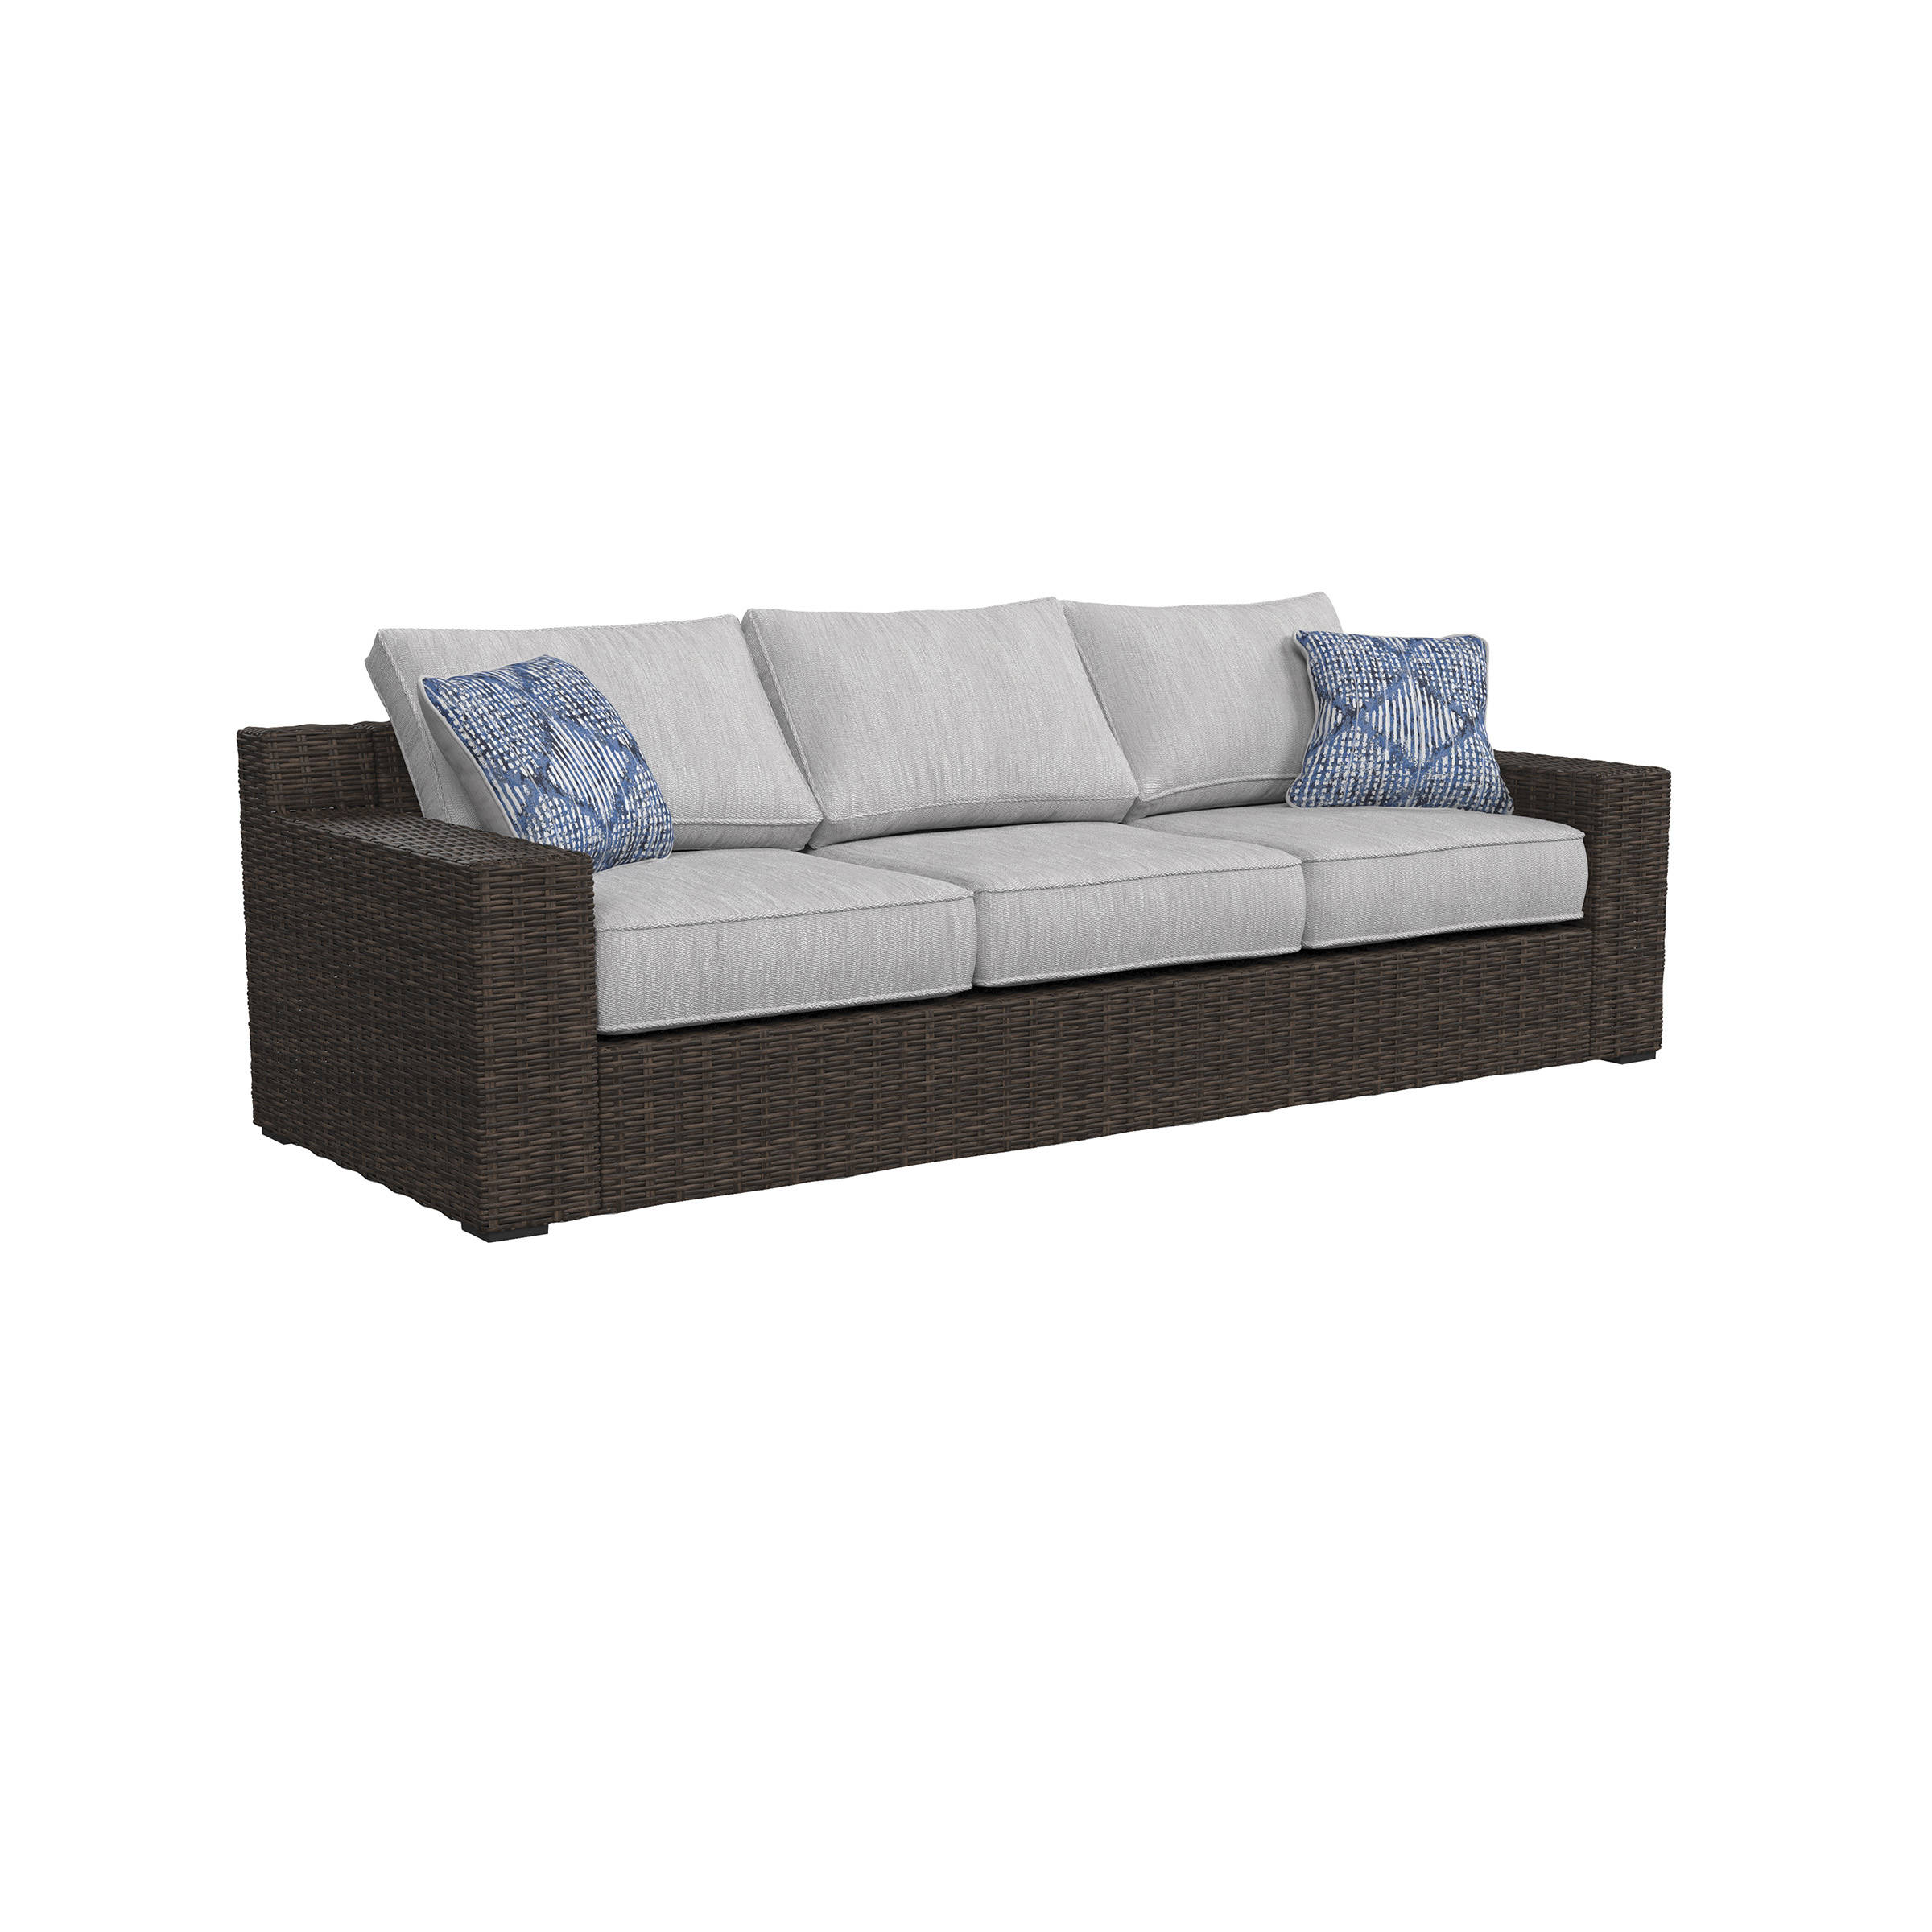 Delicieux Ashley Furniture Alta Grande Outdoor Sofa Click To Enlarge ...